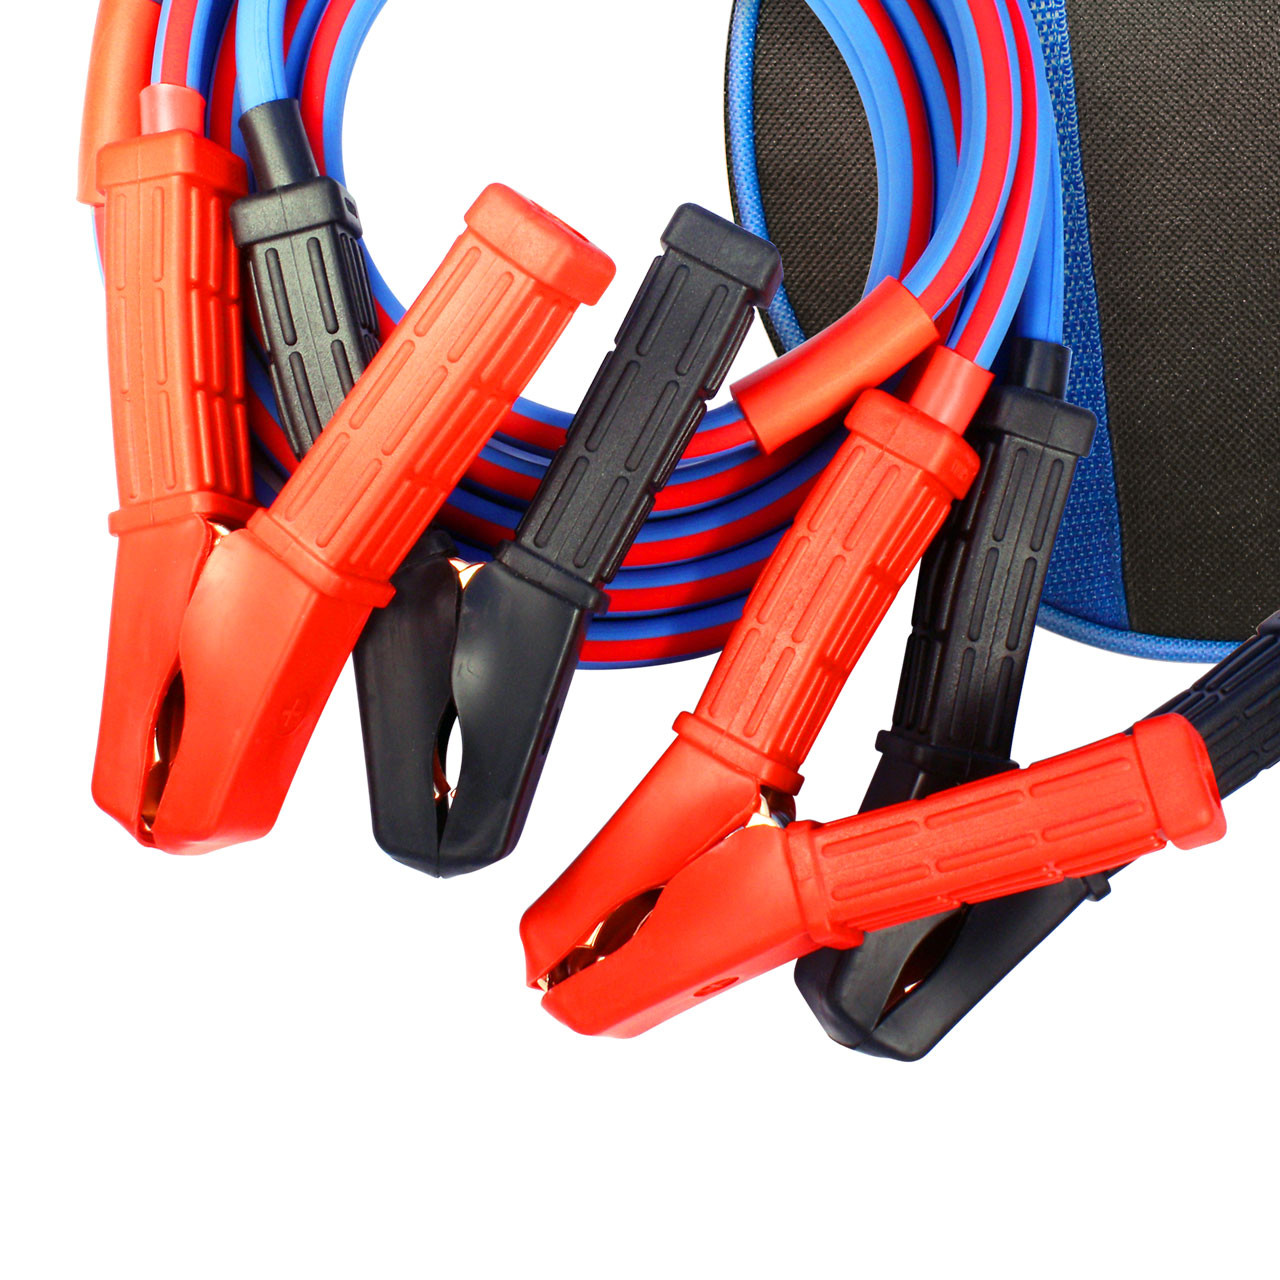 Polar Wire makes the best jumper cables available anywhere! 8 gauge, 8 foot ATV UTV